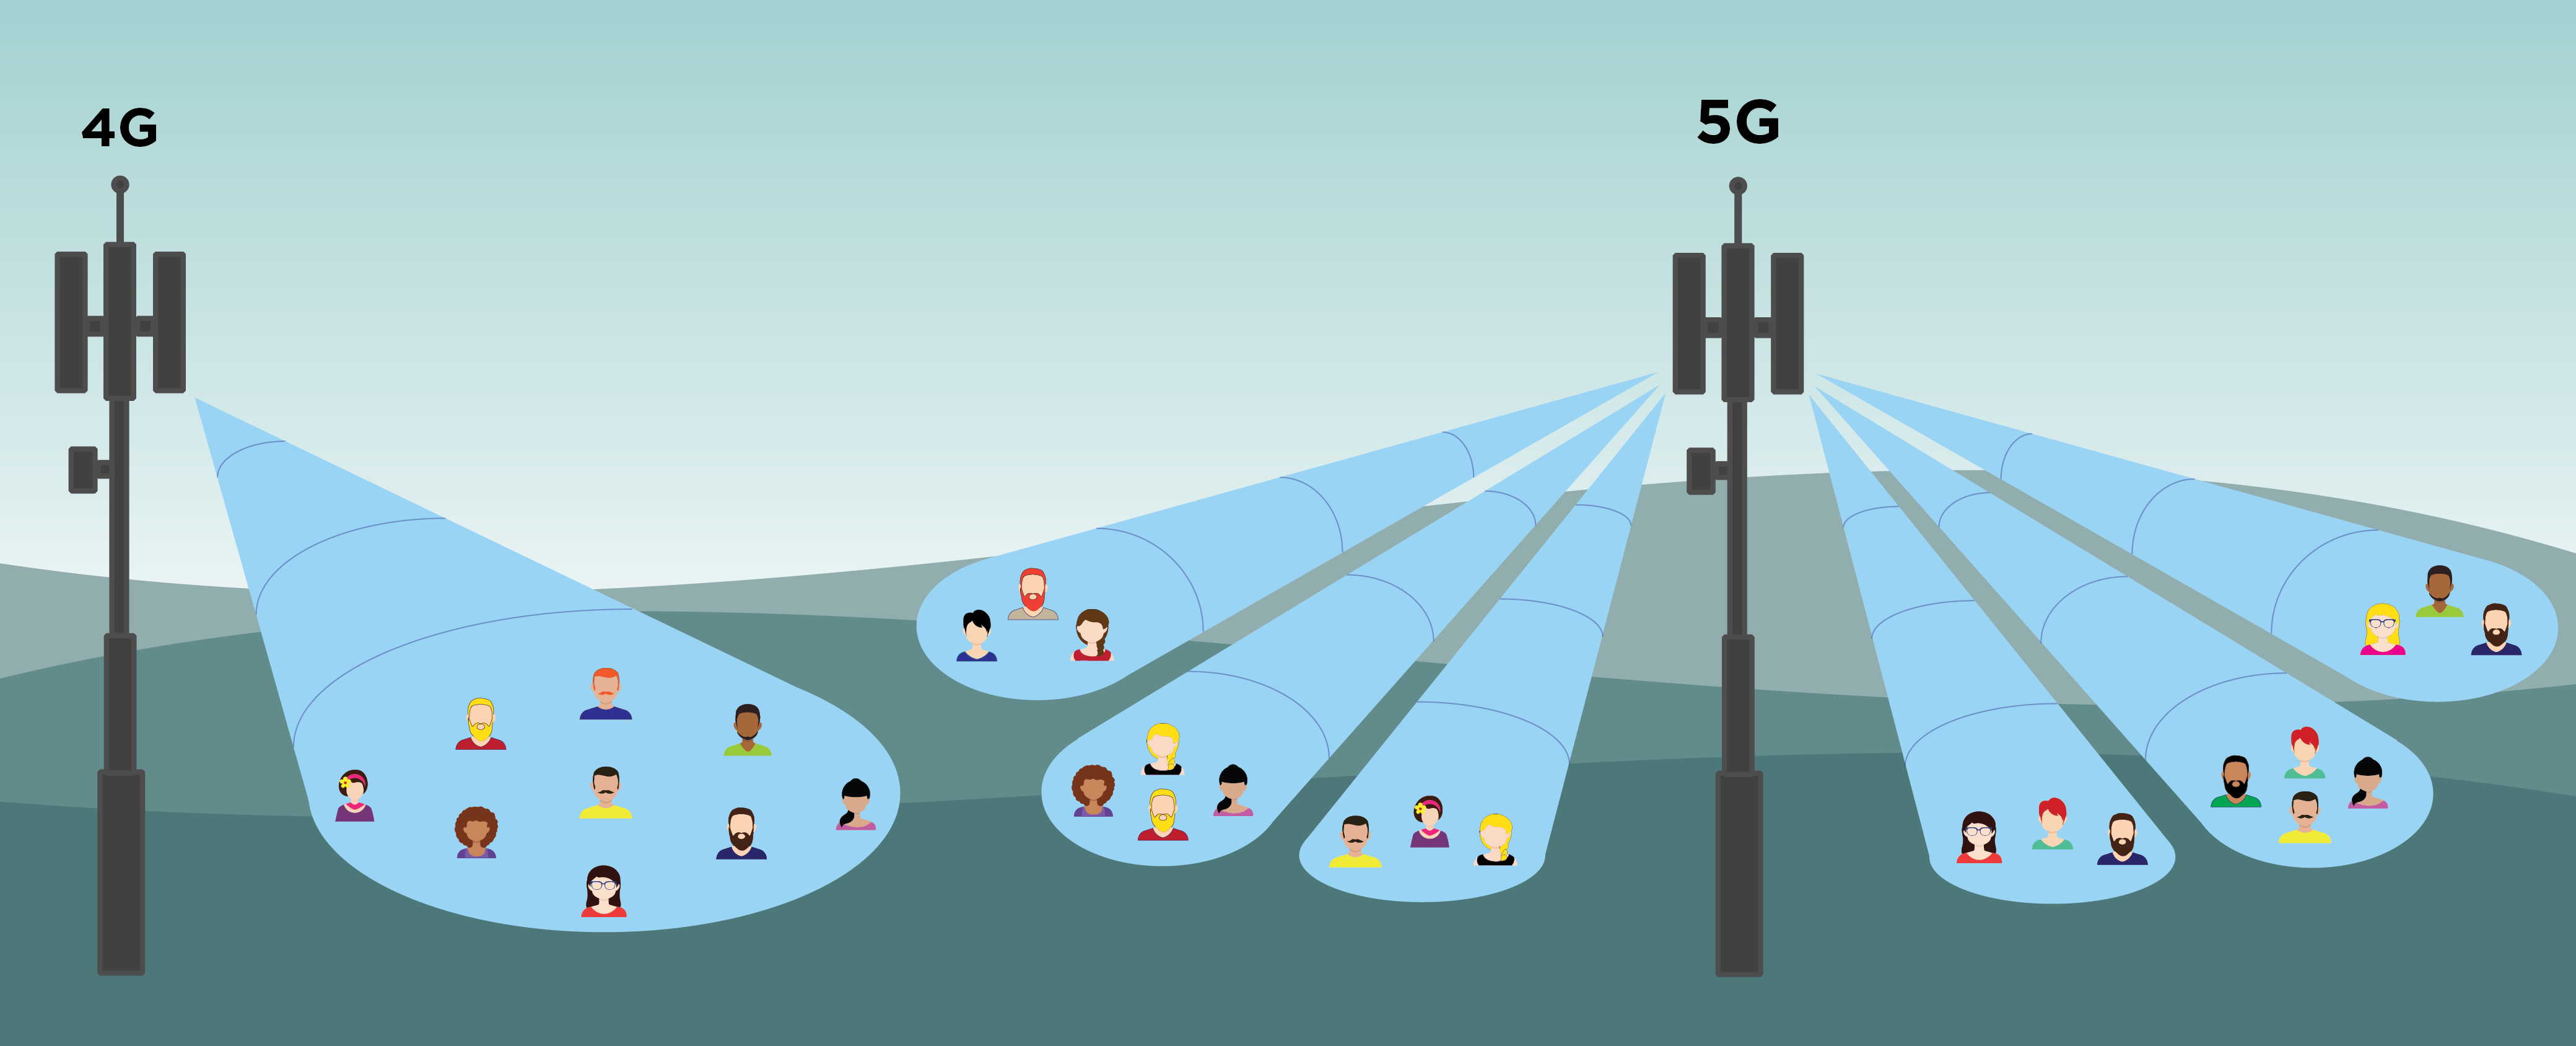 Cell Tower 4G and 5G